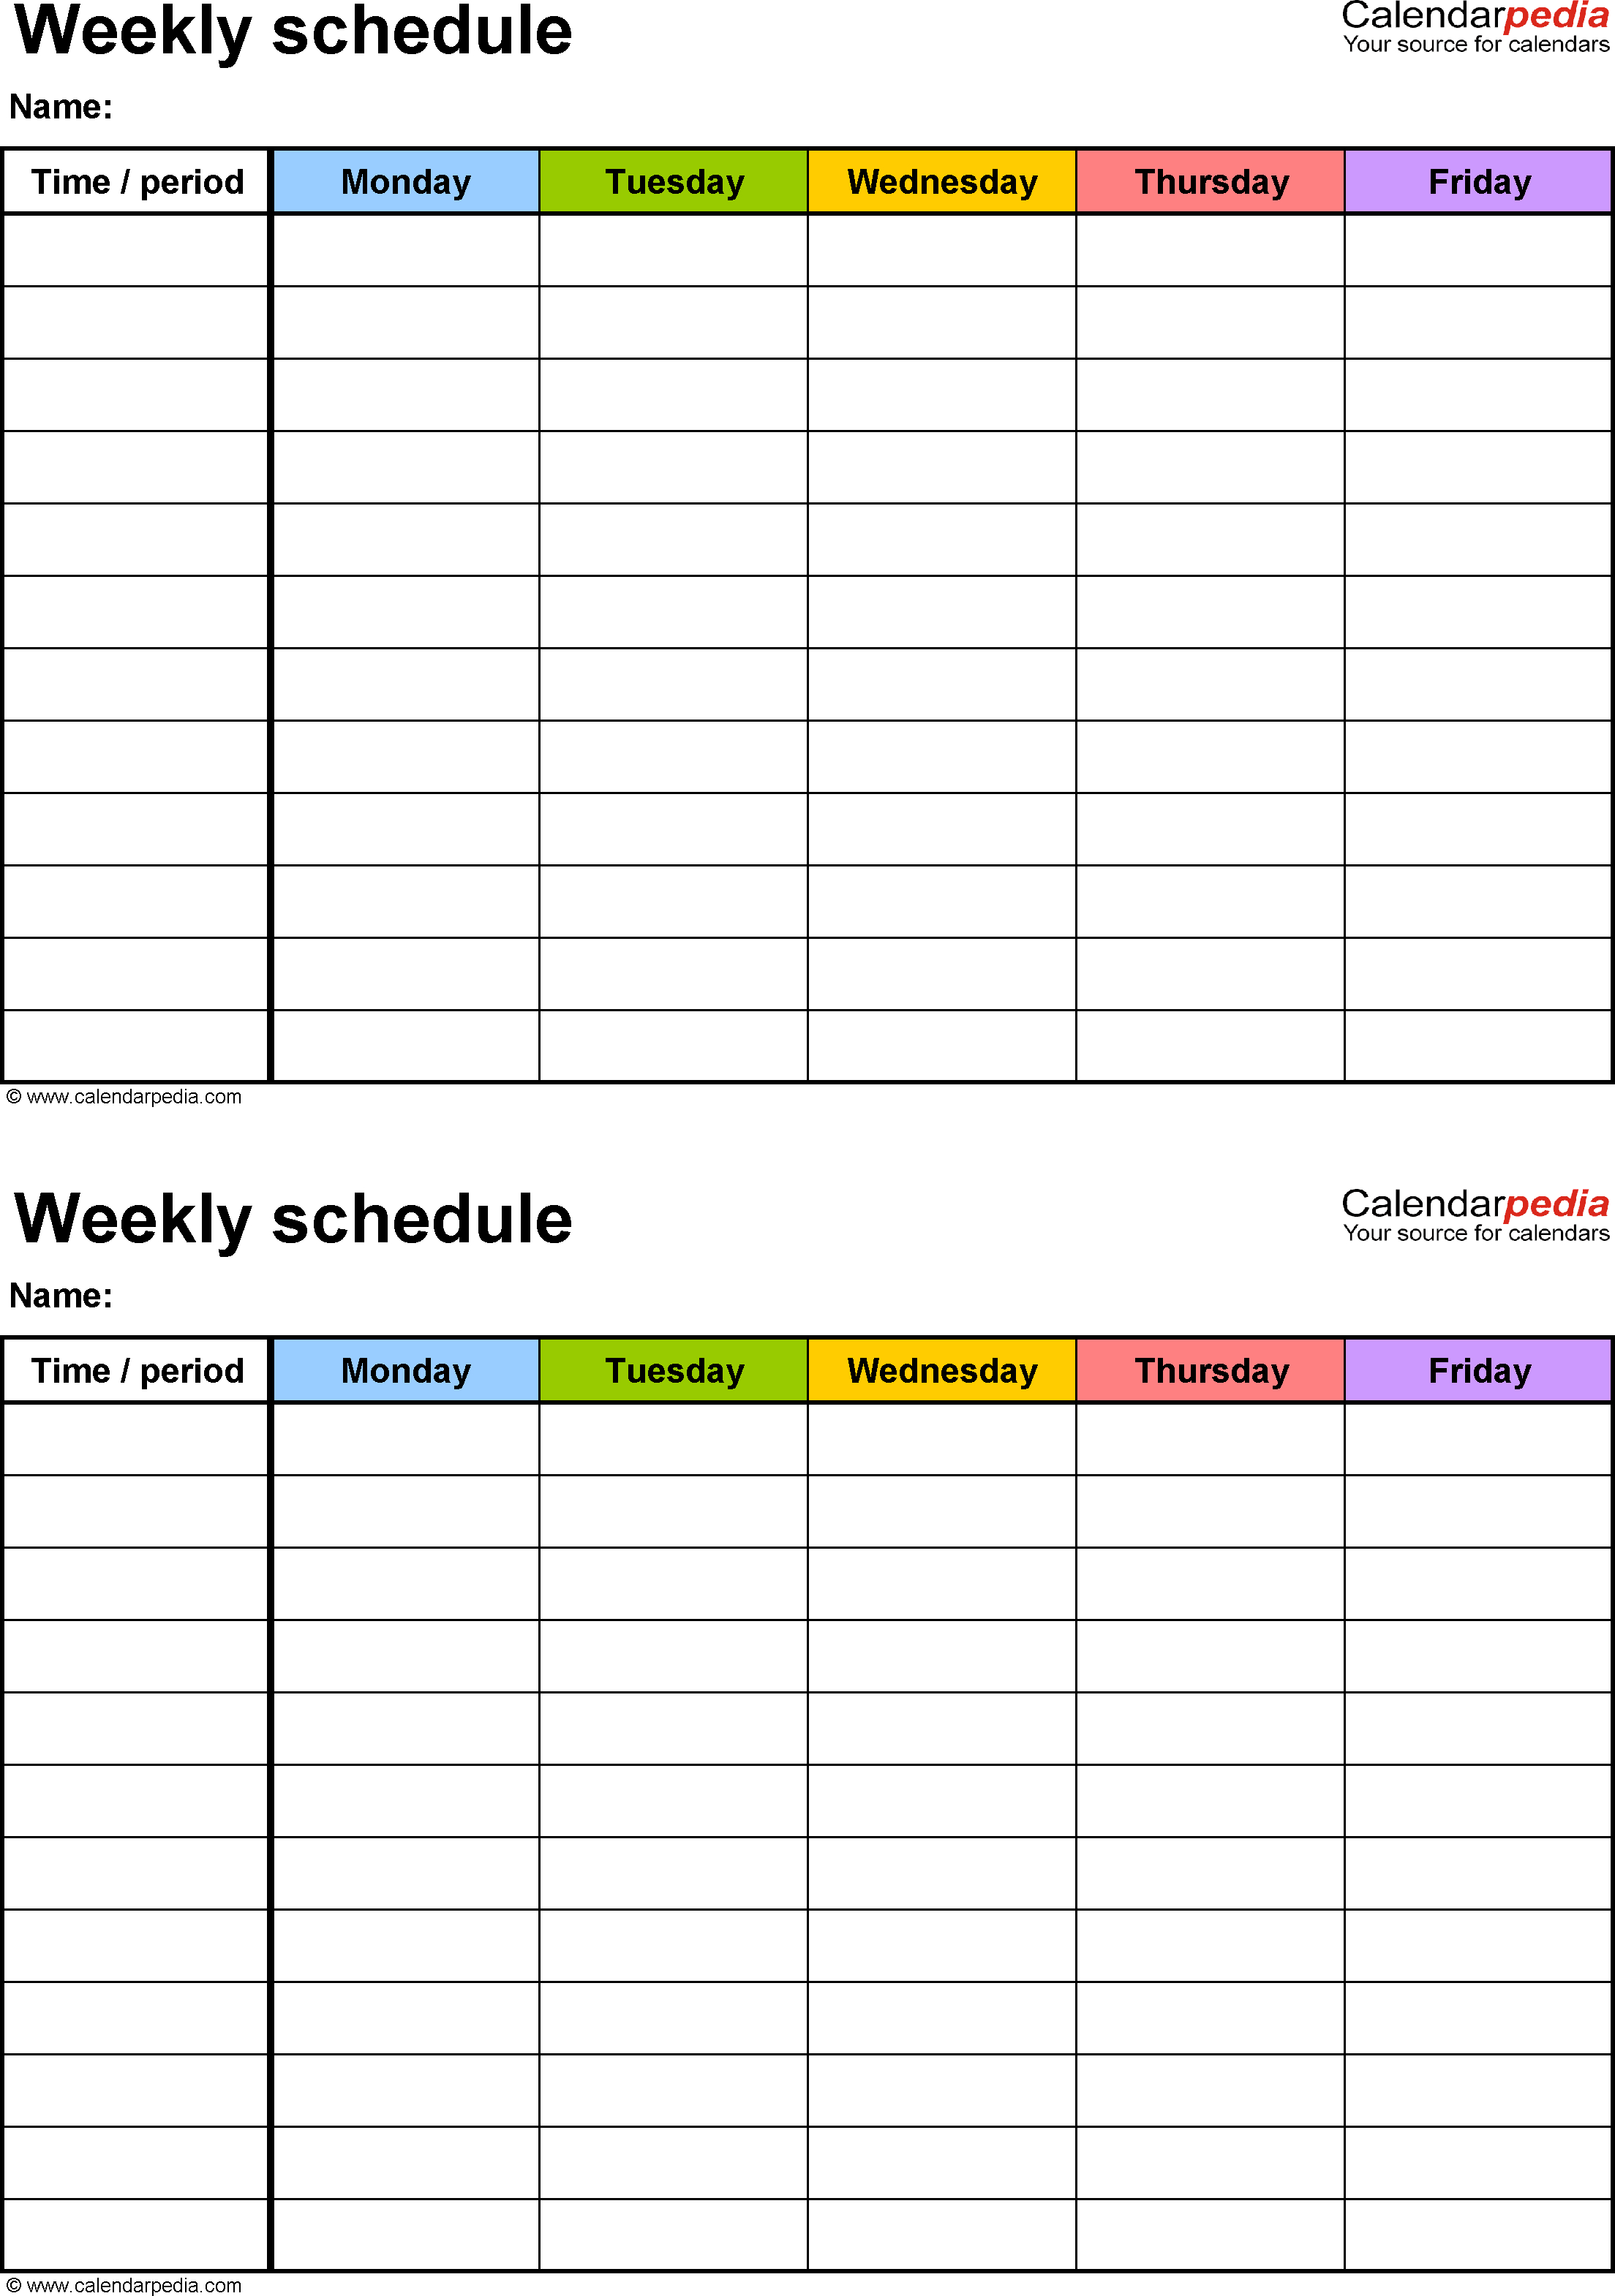 Free Weekly Schedule Templates For Excel - 18 Templates within Free Blank Day Planner With A Timeline